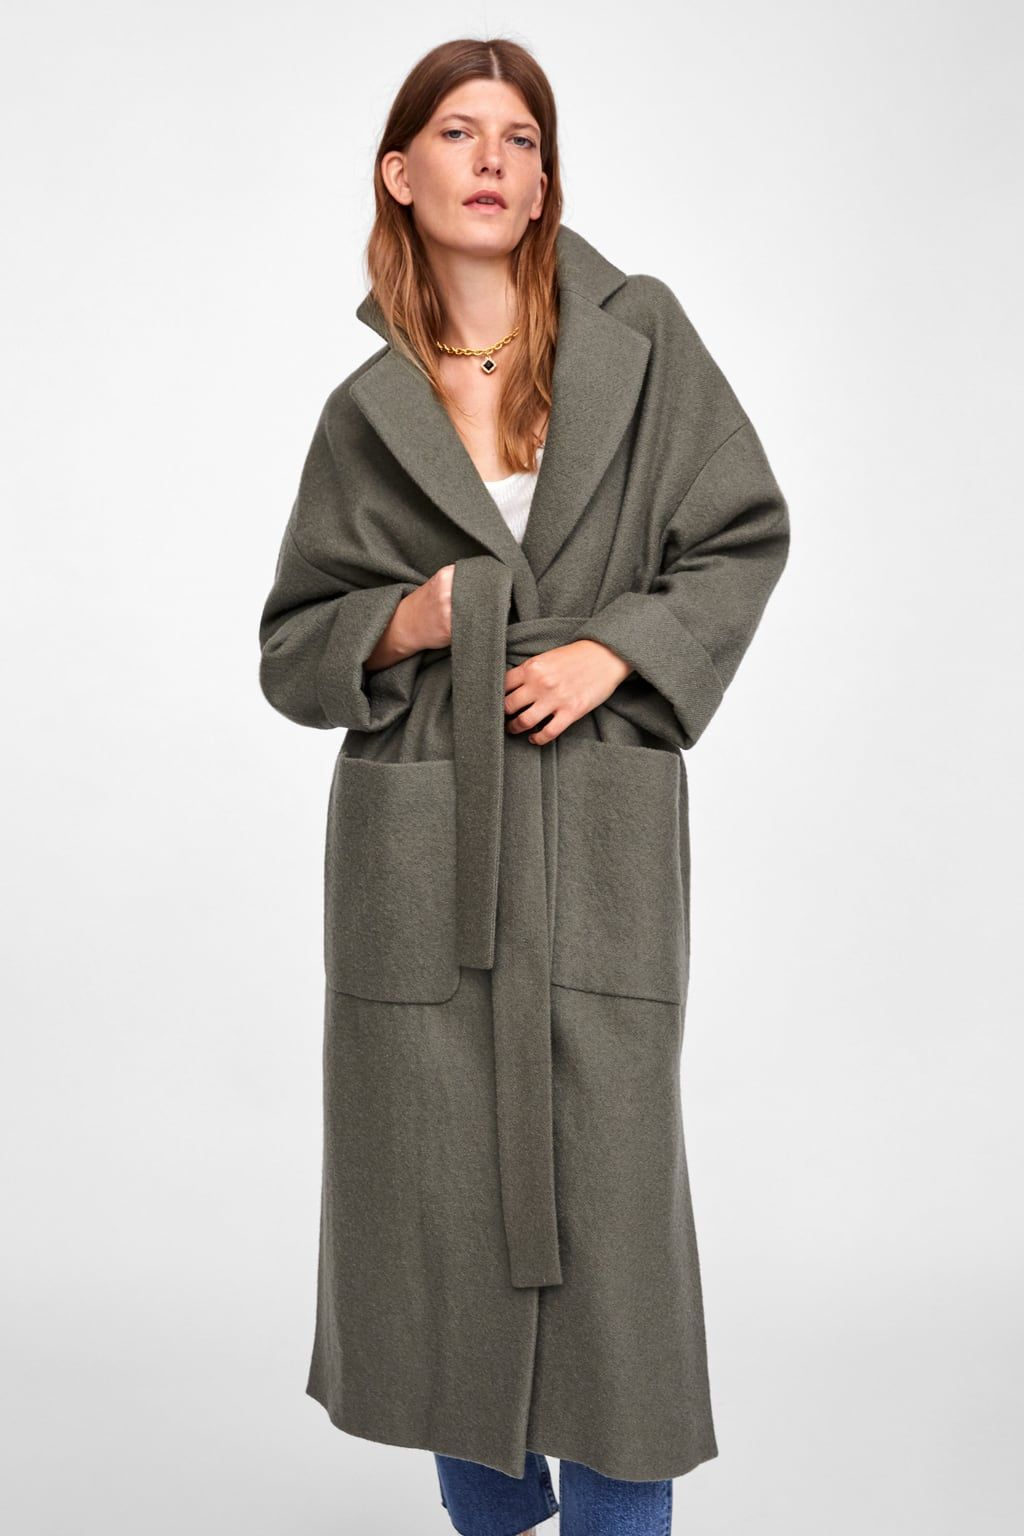 Image 6 of LONG BELTED COAT from Zara | Mantel, Mode mantel